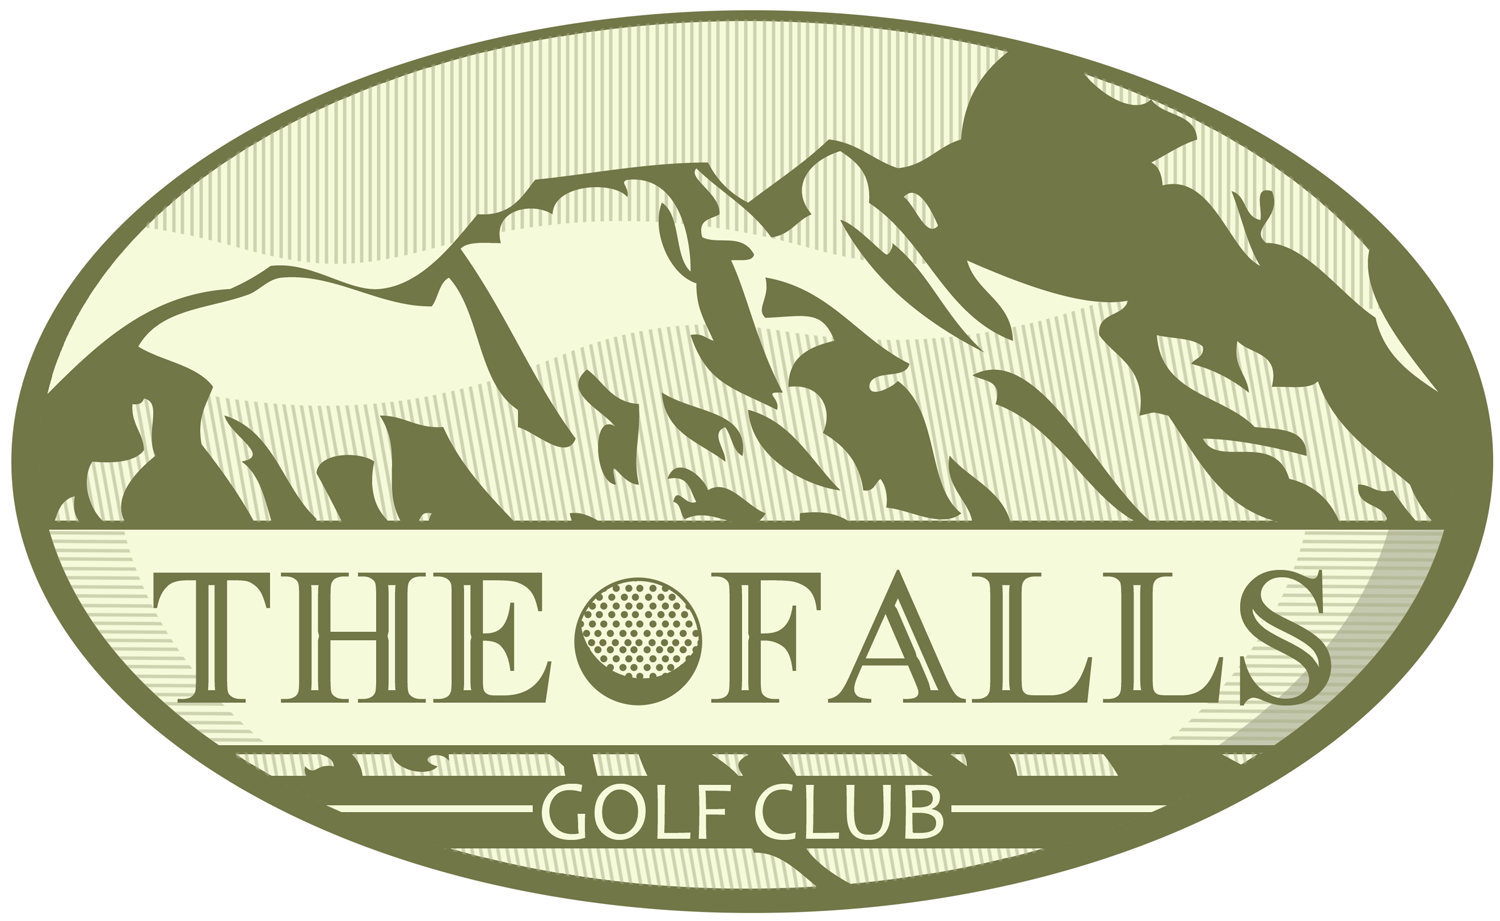 Logo Design by Jeff Gilmet - Entry No. 2 in the Logo Design Contest The Falls Golf Club Logo Design.